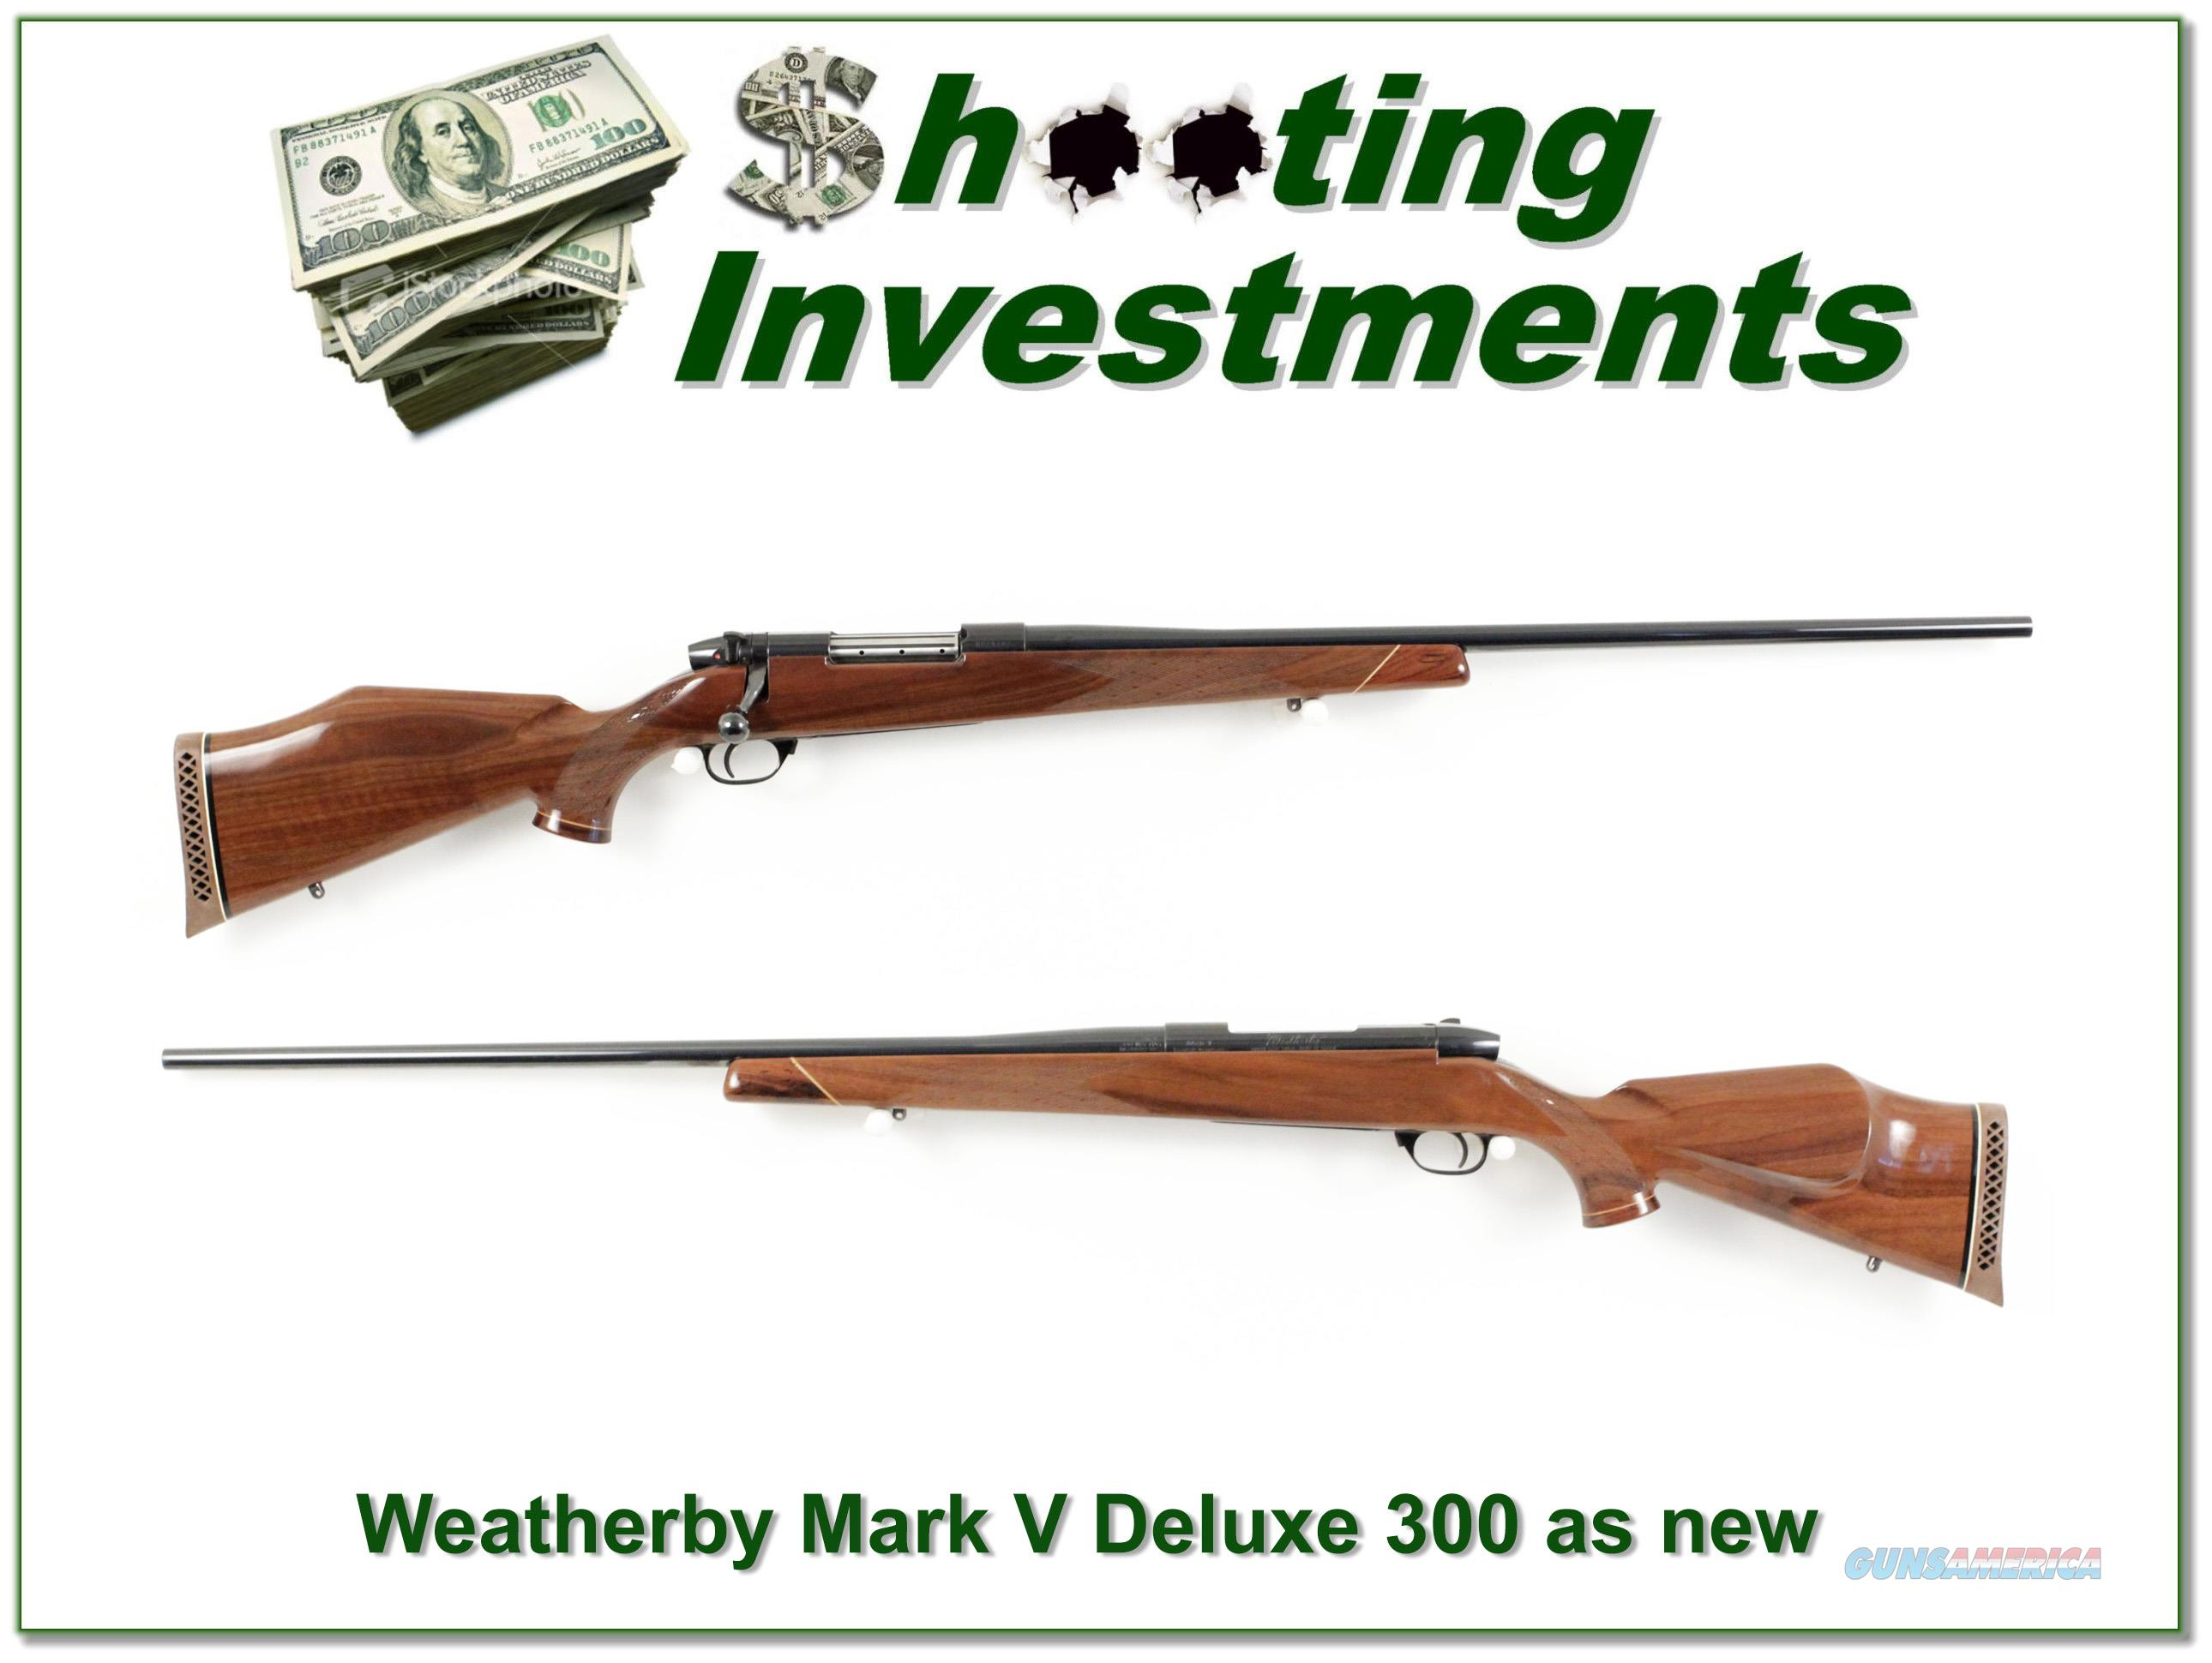 Weatherby Mark V Deluxe 300 Wthy Mag 26in as new!  Guns > Rifles > Weatherby Rifles > Sporting